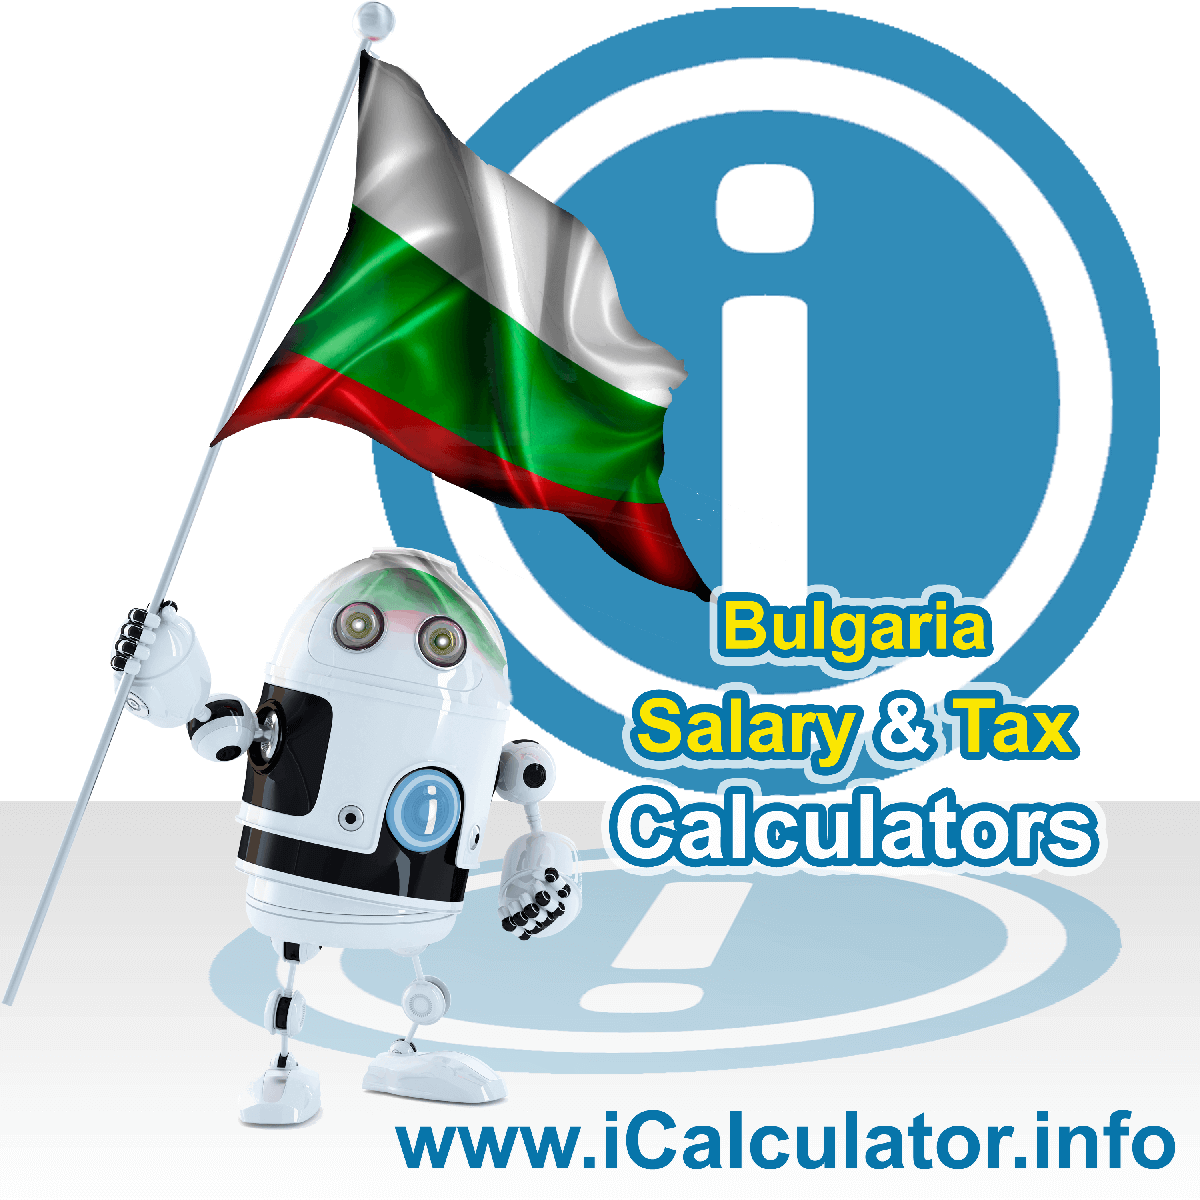 Bulgaria Tax Calculator. This image shows the Bulgaria flag and information relating to the tax formula for the Bulgaria Salary Calculator